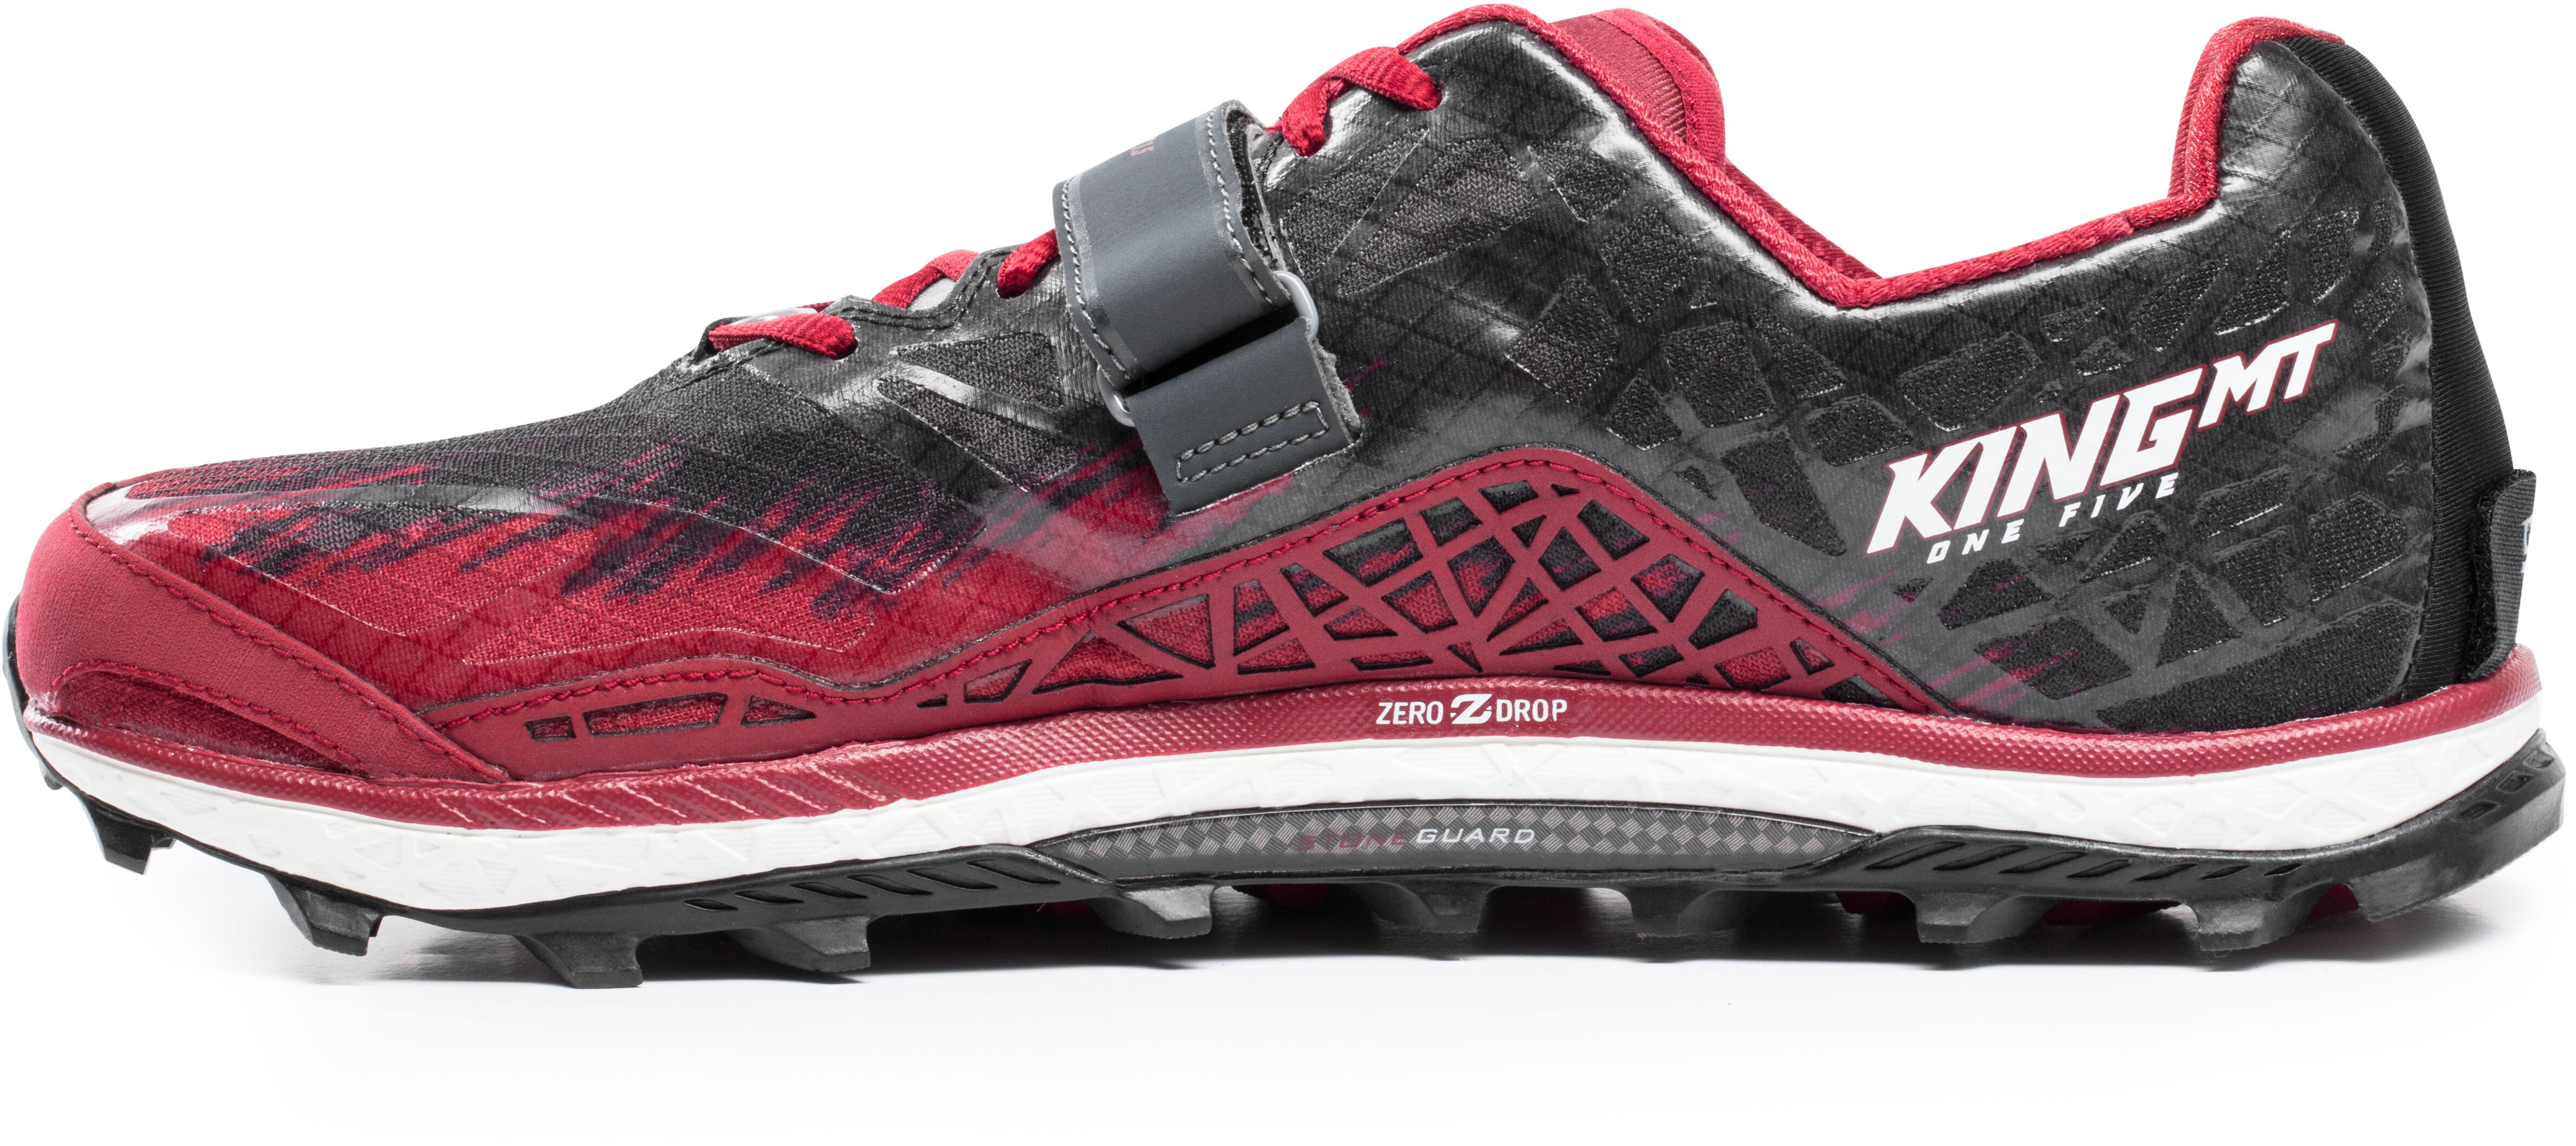 0ddf1f00afb Altra King MT 1.5 Trail Running Shoes Men red